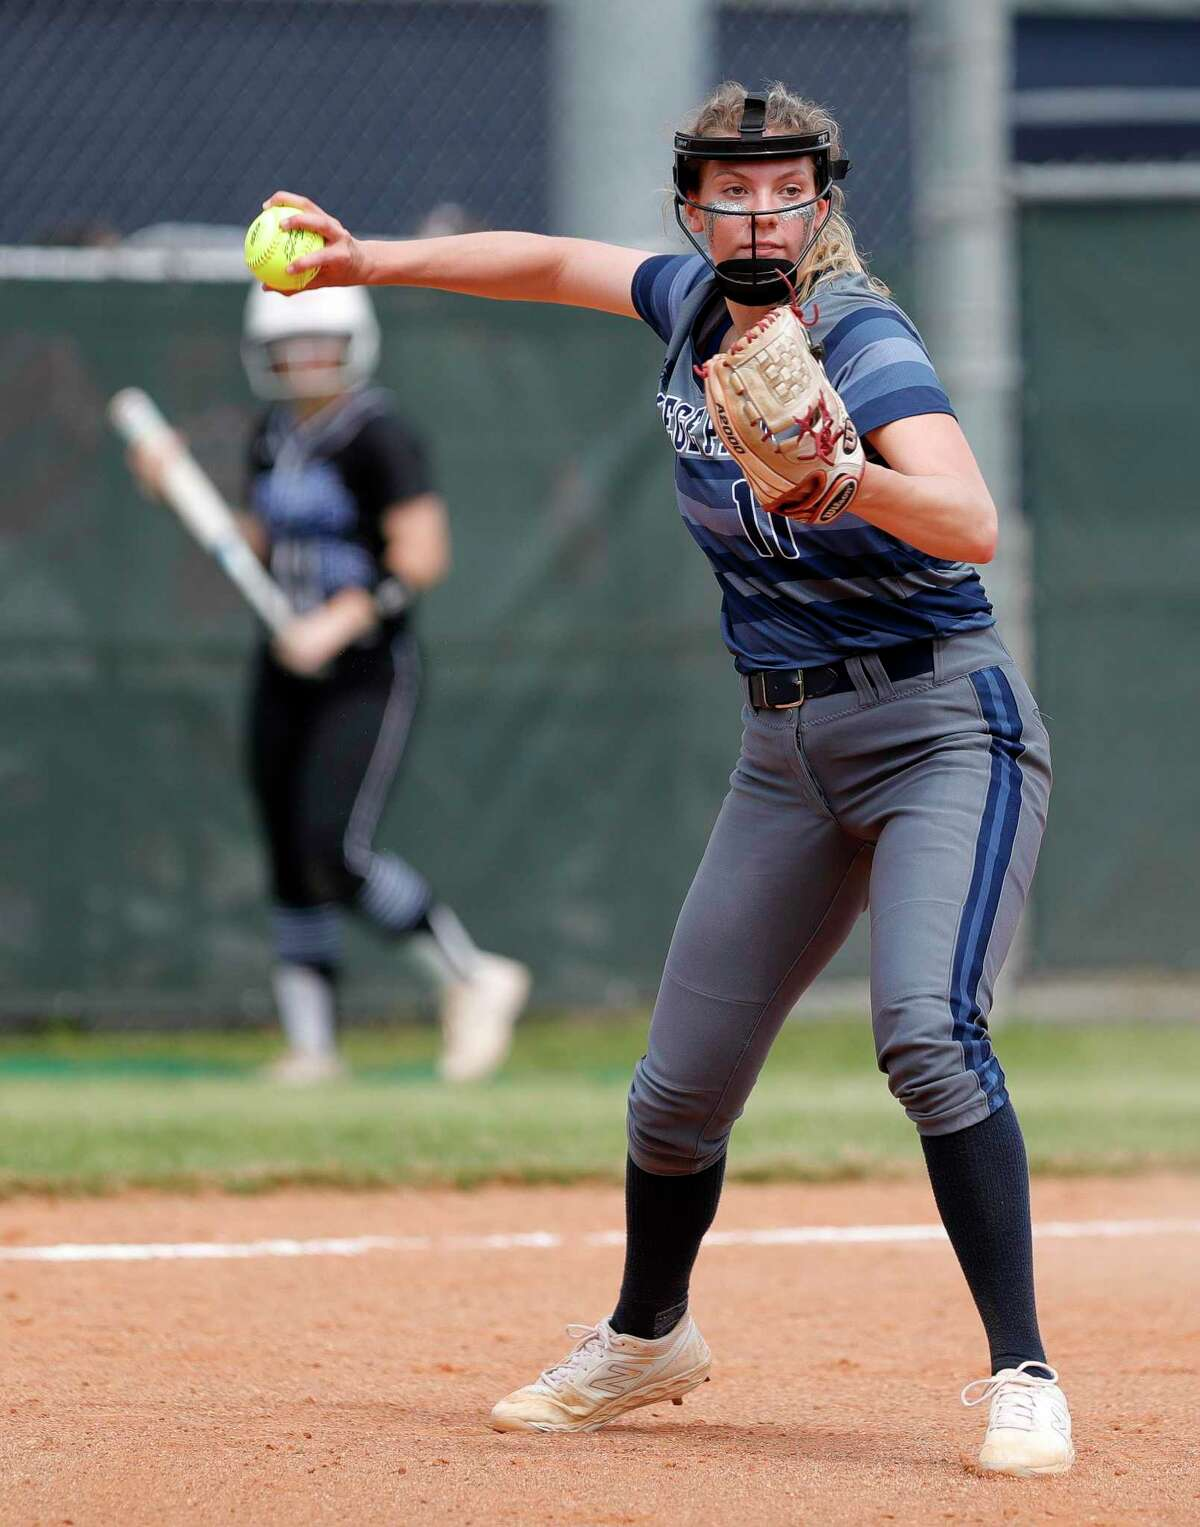 College Park starting pitcher Grace Fanset (11) fields a bunt by Emily Lyons #2 of Oak Ridge during the second inning of a District 15-6A high school softball game at College Park High School, Wednesday, March 11, 2020, in The Woodlands.